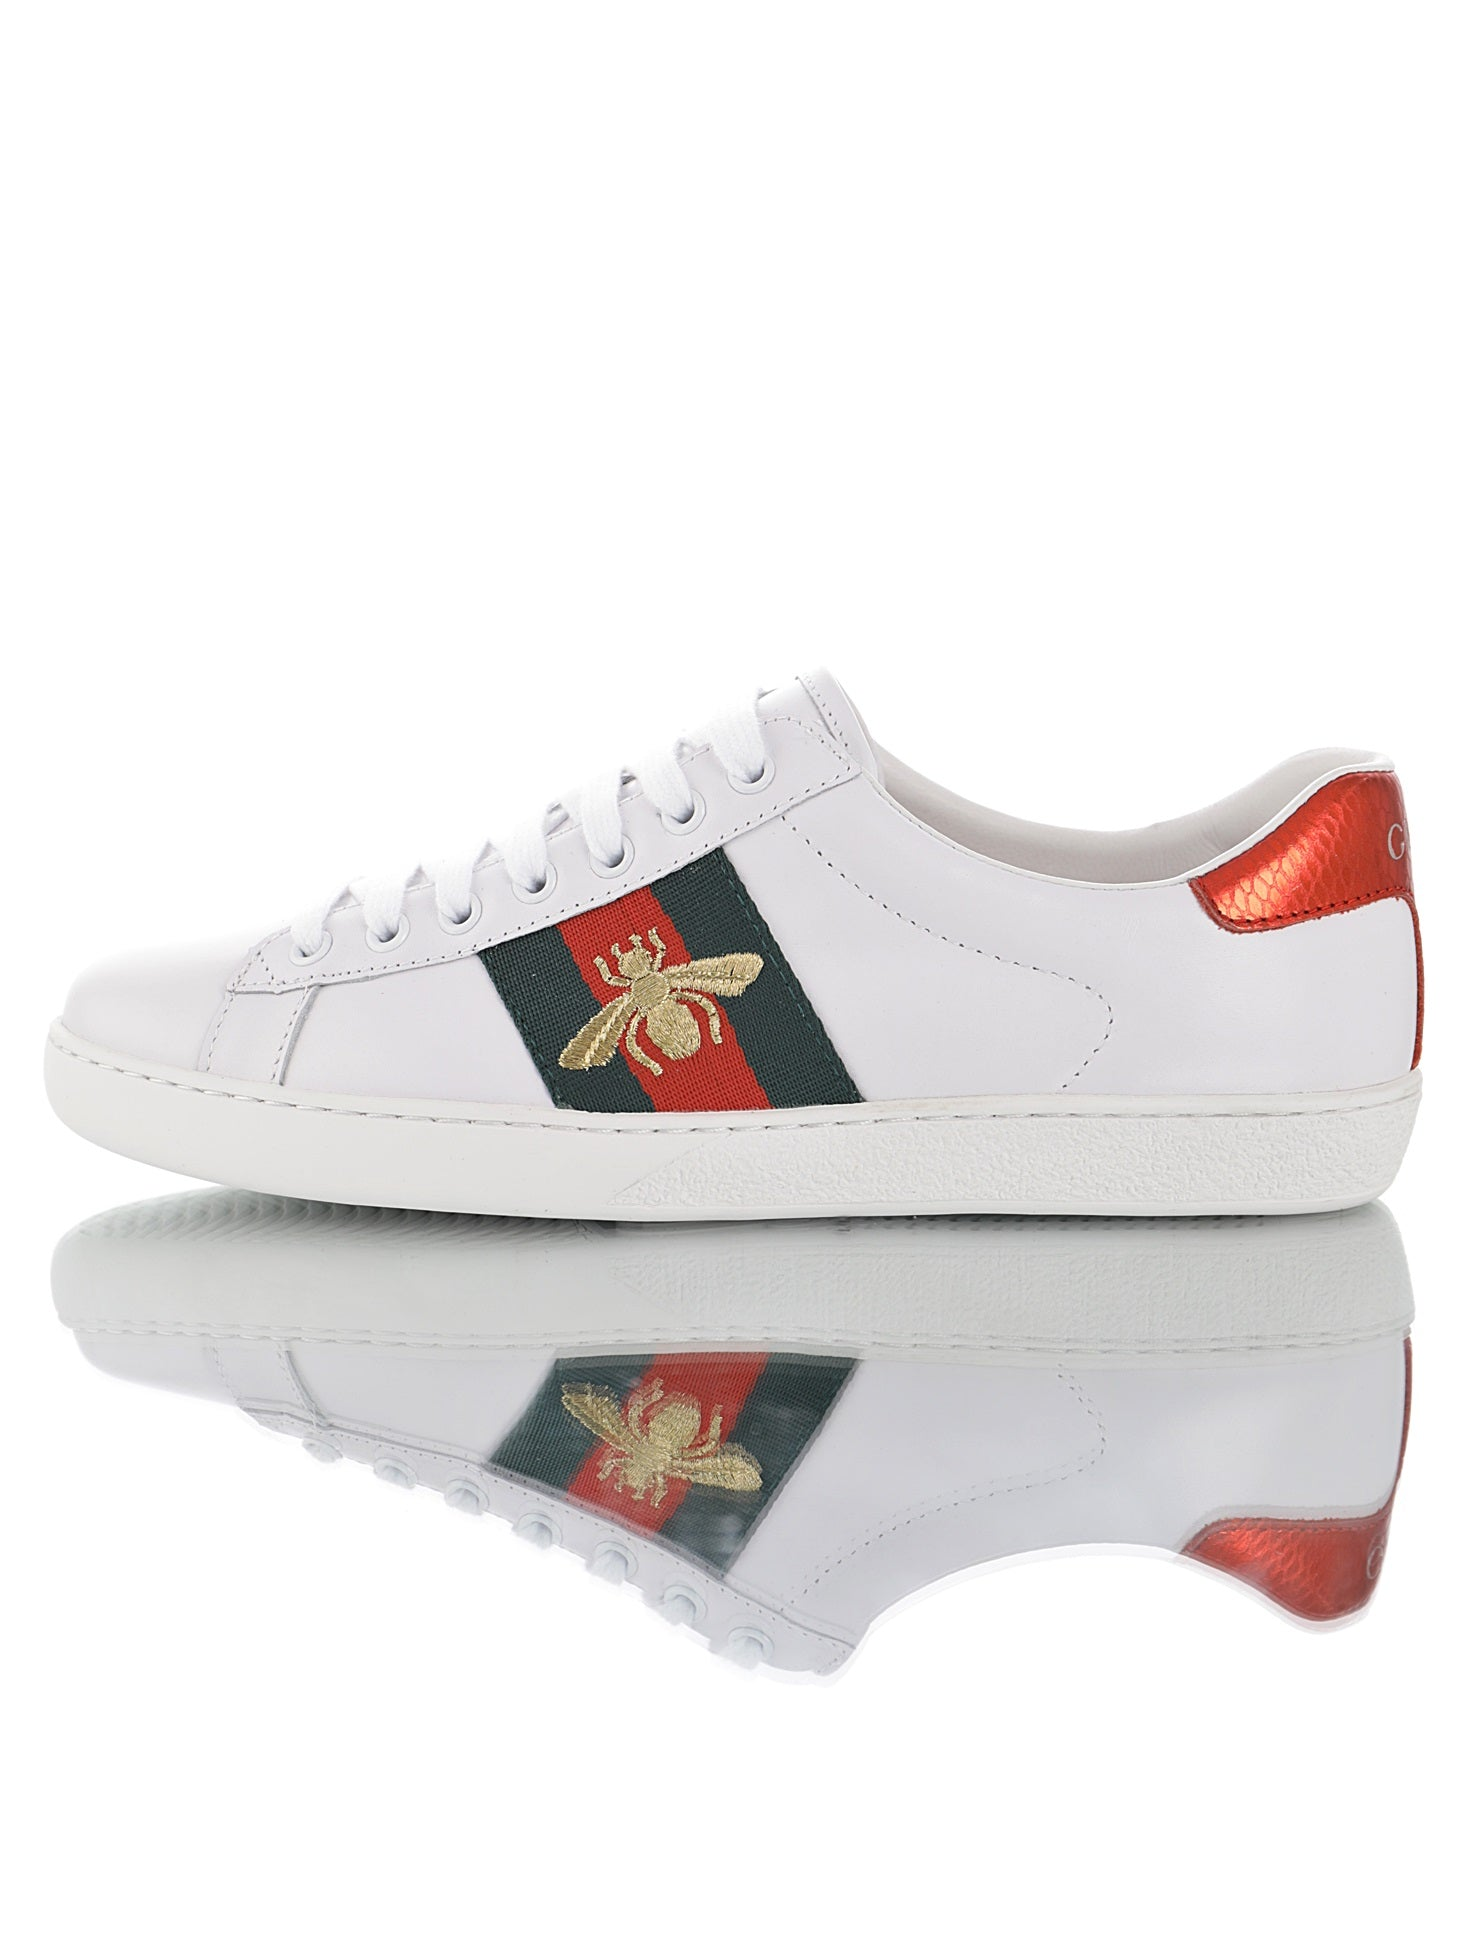 Gucci Ace embroidered sneaker 431942